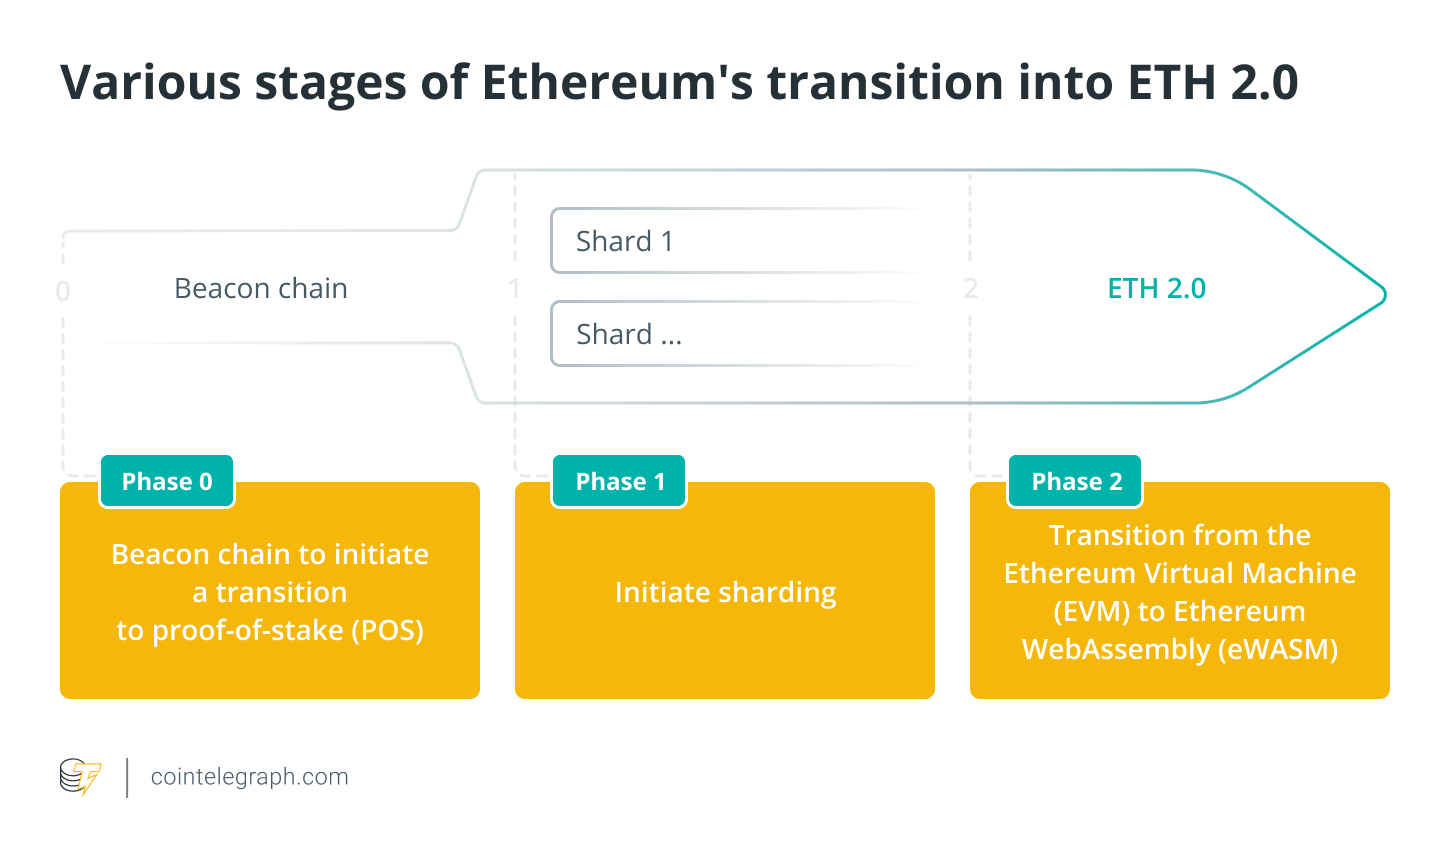 Various stages of Ethereum's transition into ETH 2.0